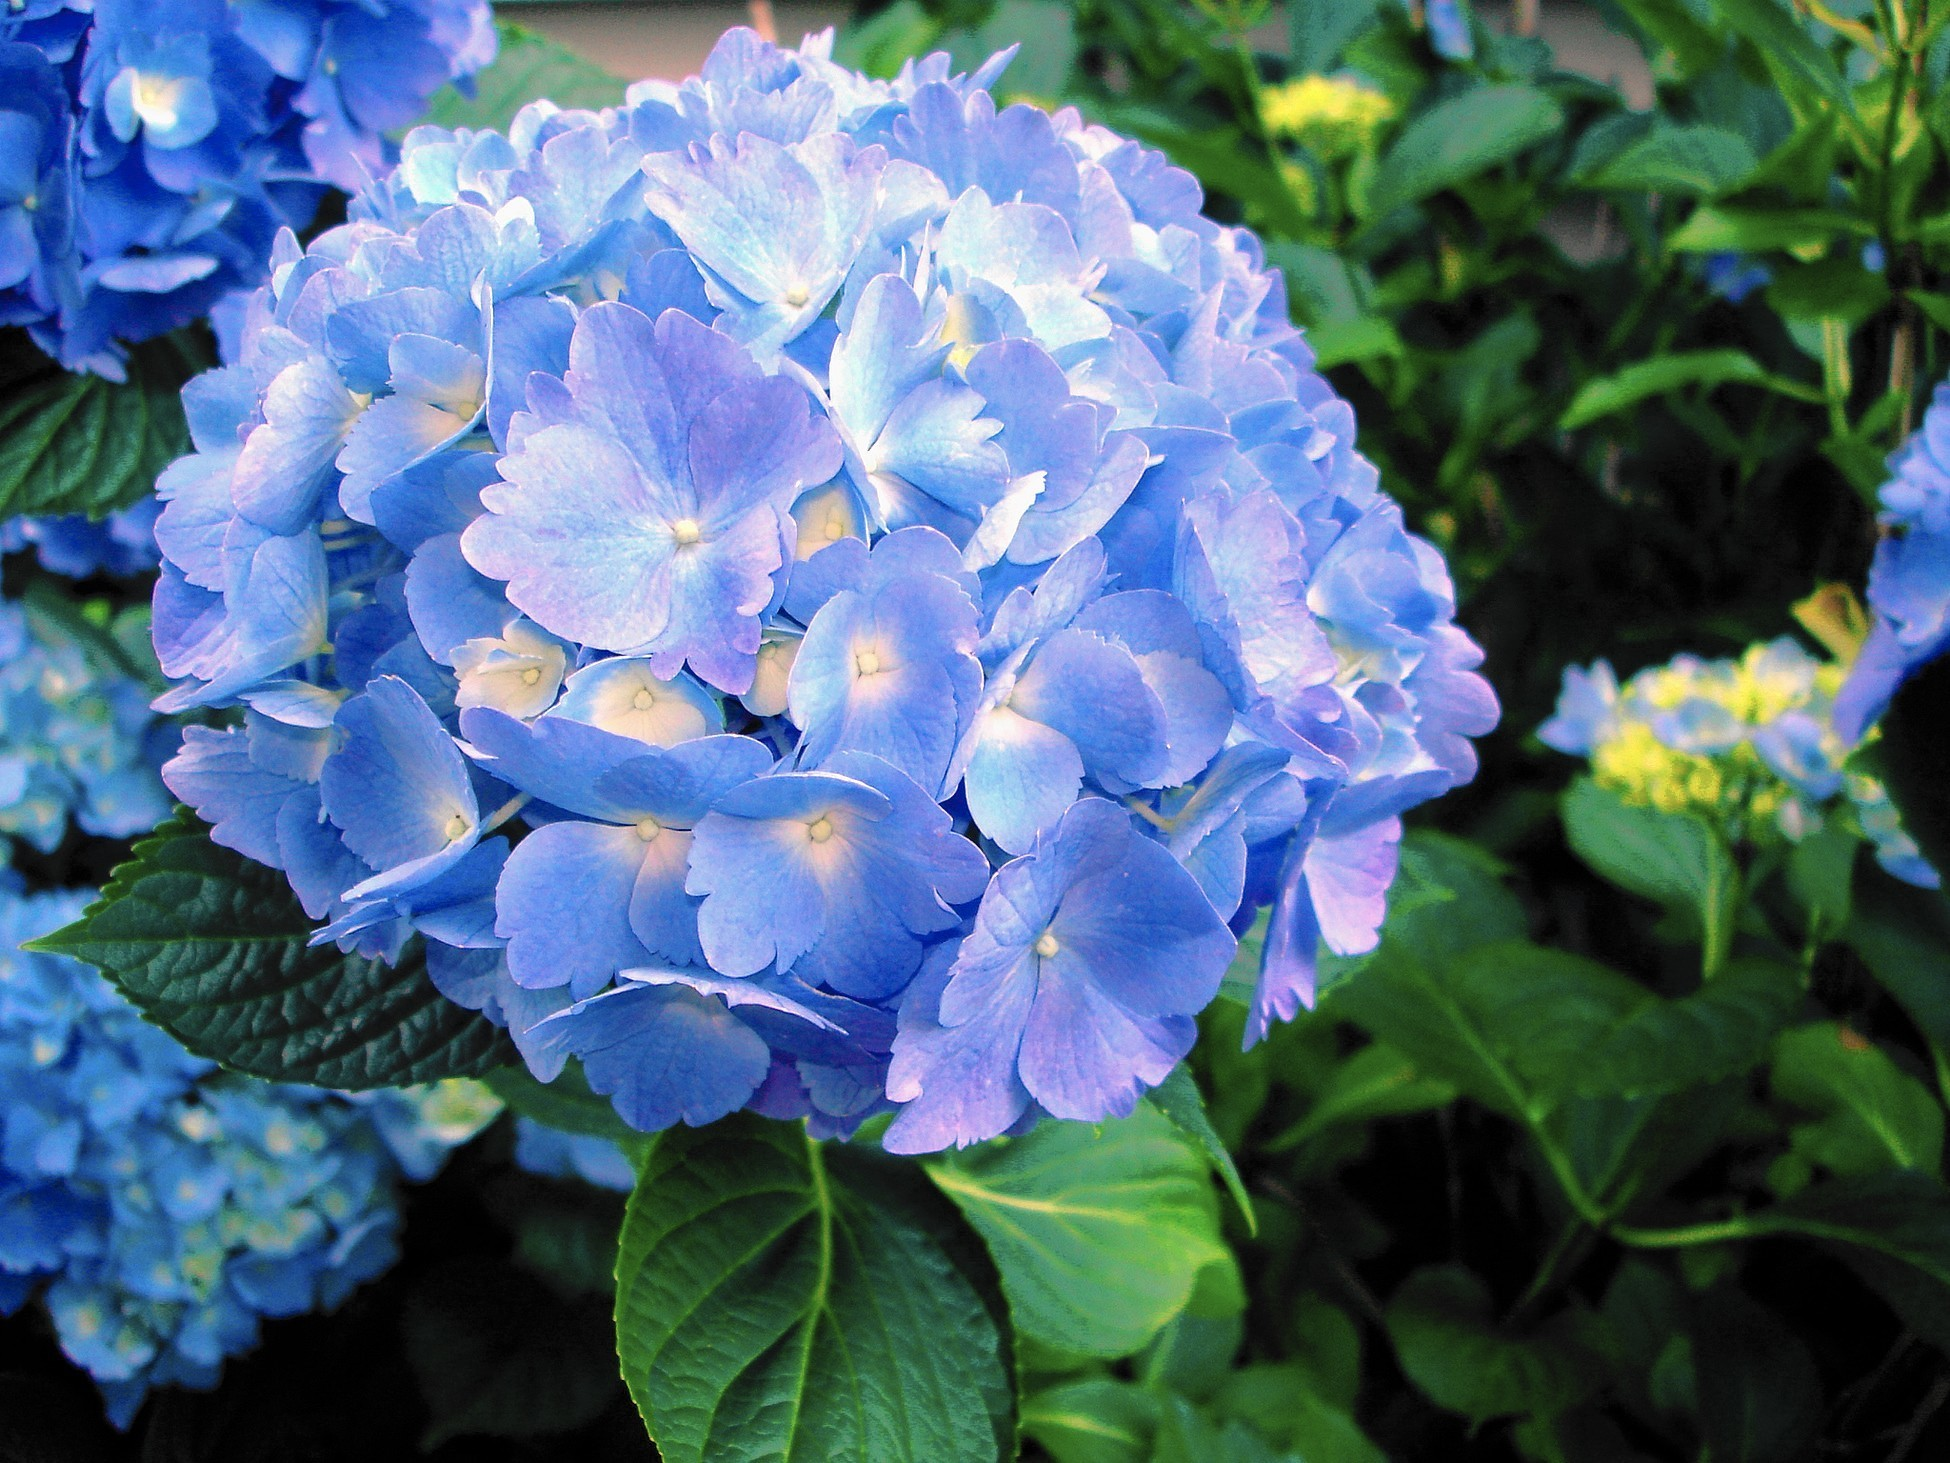 Gardening Are Epsom Salts Good For Hydrangeas The Morning Call